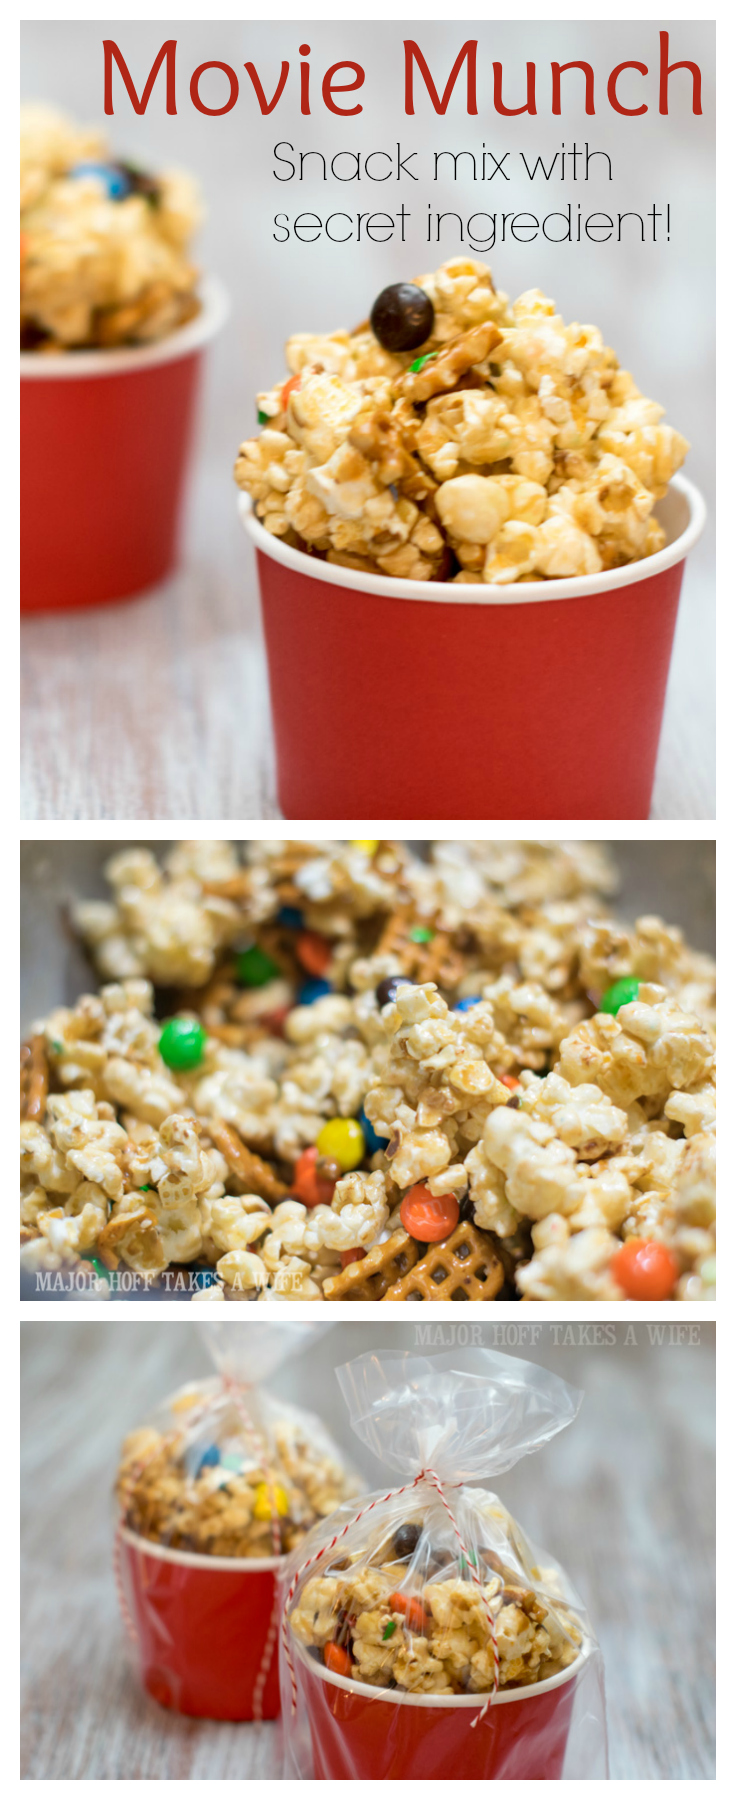 It's time for a Family Movie Night! You won't want to miss this recipe for the fabulous Movie Munch! Can you guess what the secret ingredient is? Post also shows how to create your own Guardians of the Galaxy Gift Basket, perfect for your favorite super hero fans, or for a Finals Survival kit. #OwnTheGalaxy #CBias #sp #ad